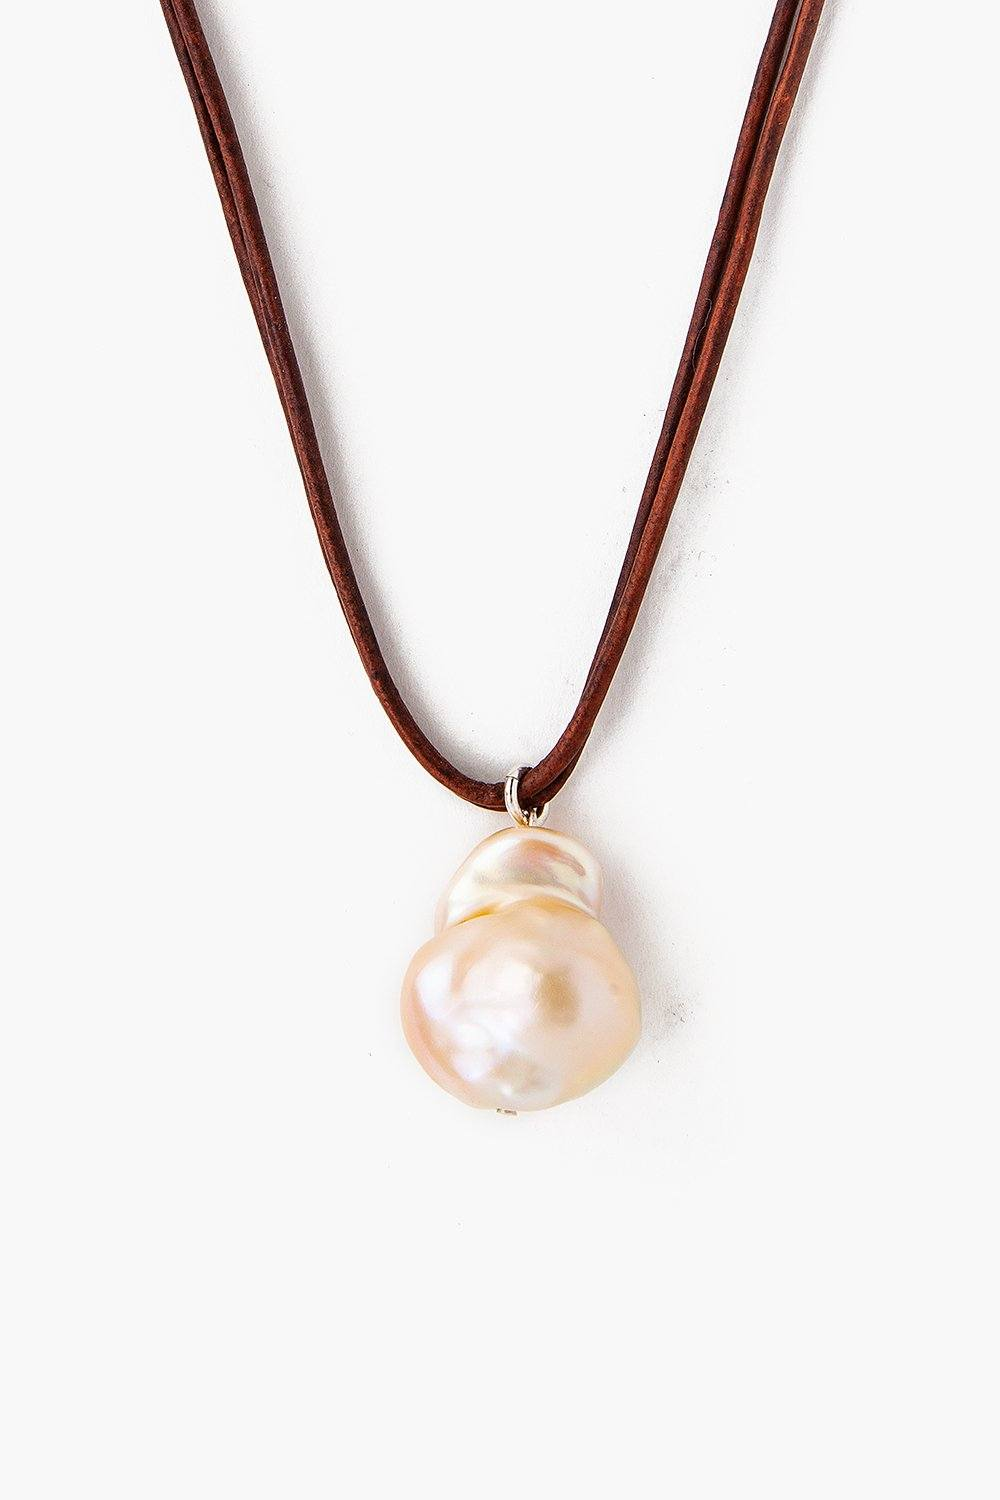 Natural Pink Baroque Pearl on Leather Cord Necklace